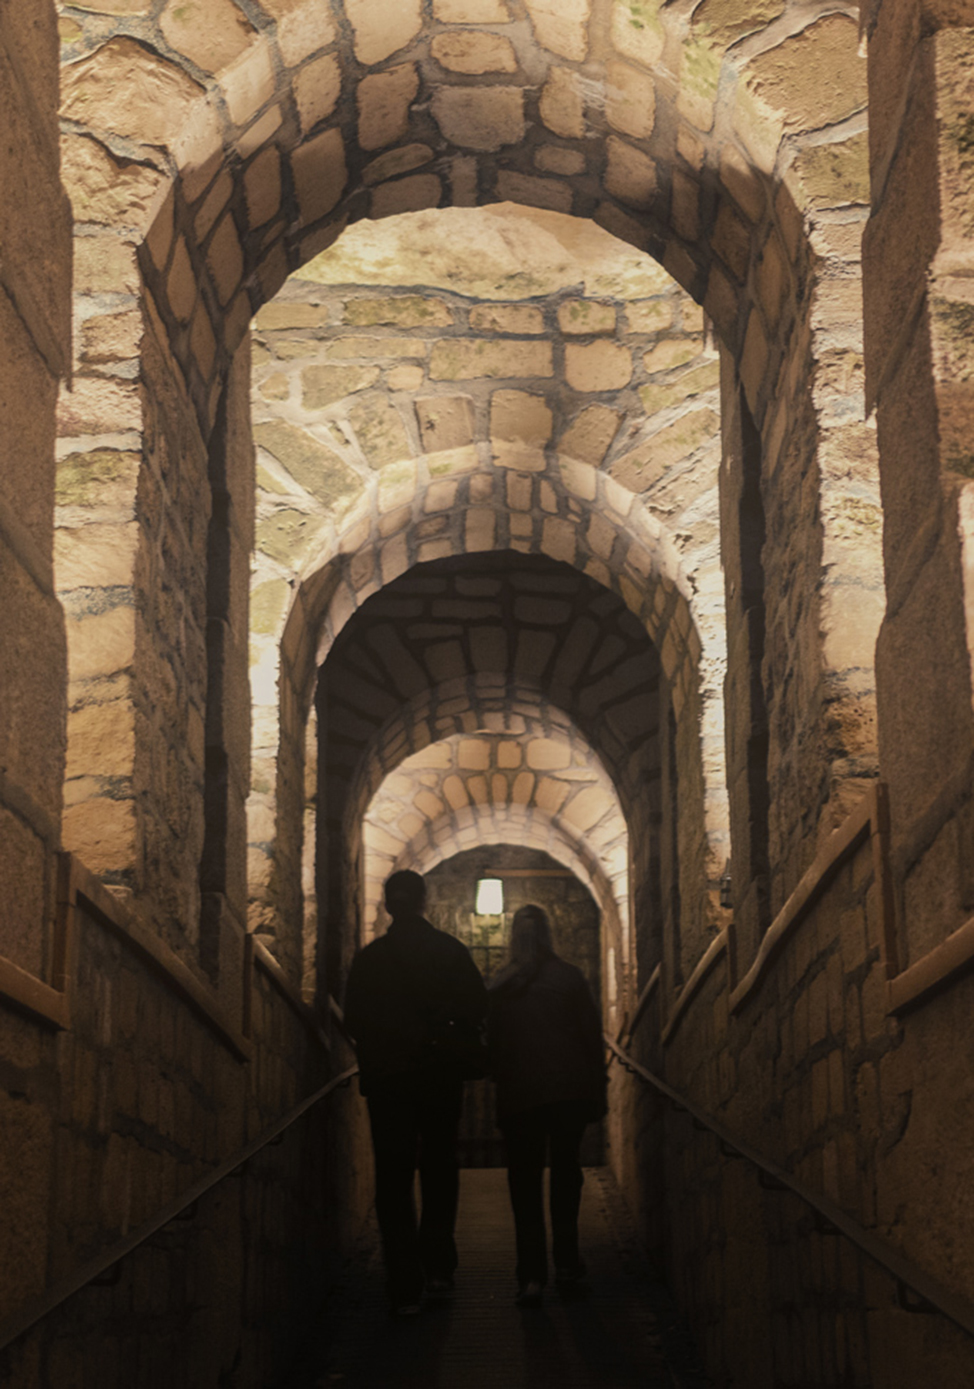 Catacombs-Entrance-974x1389